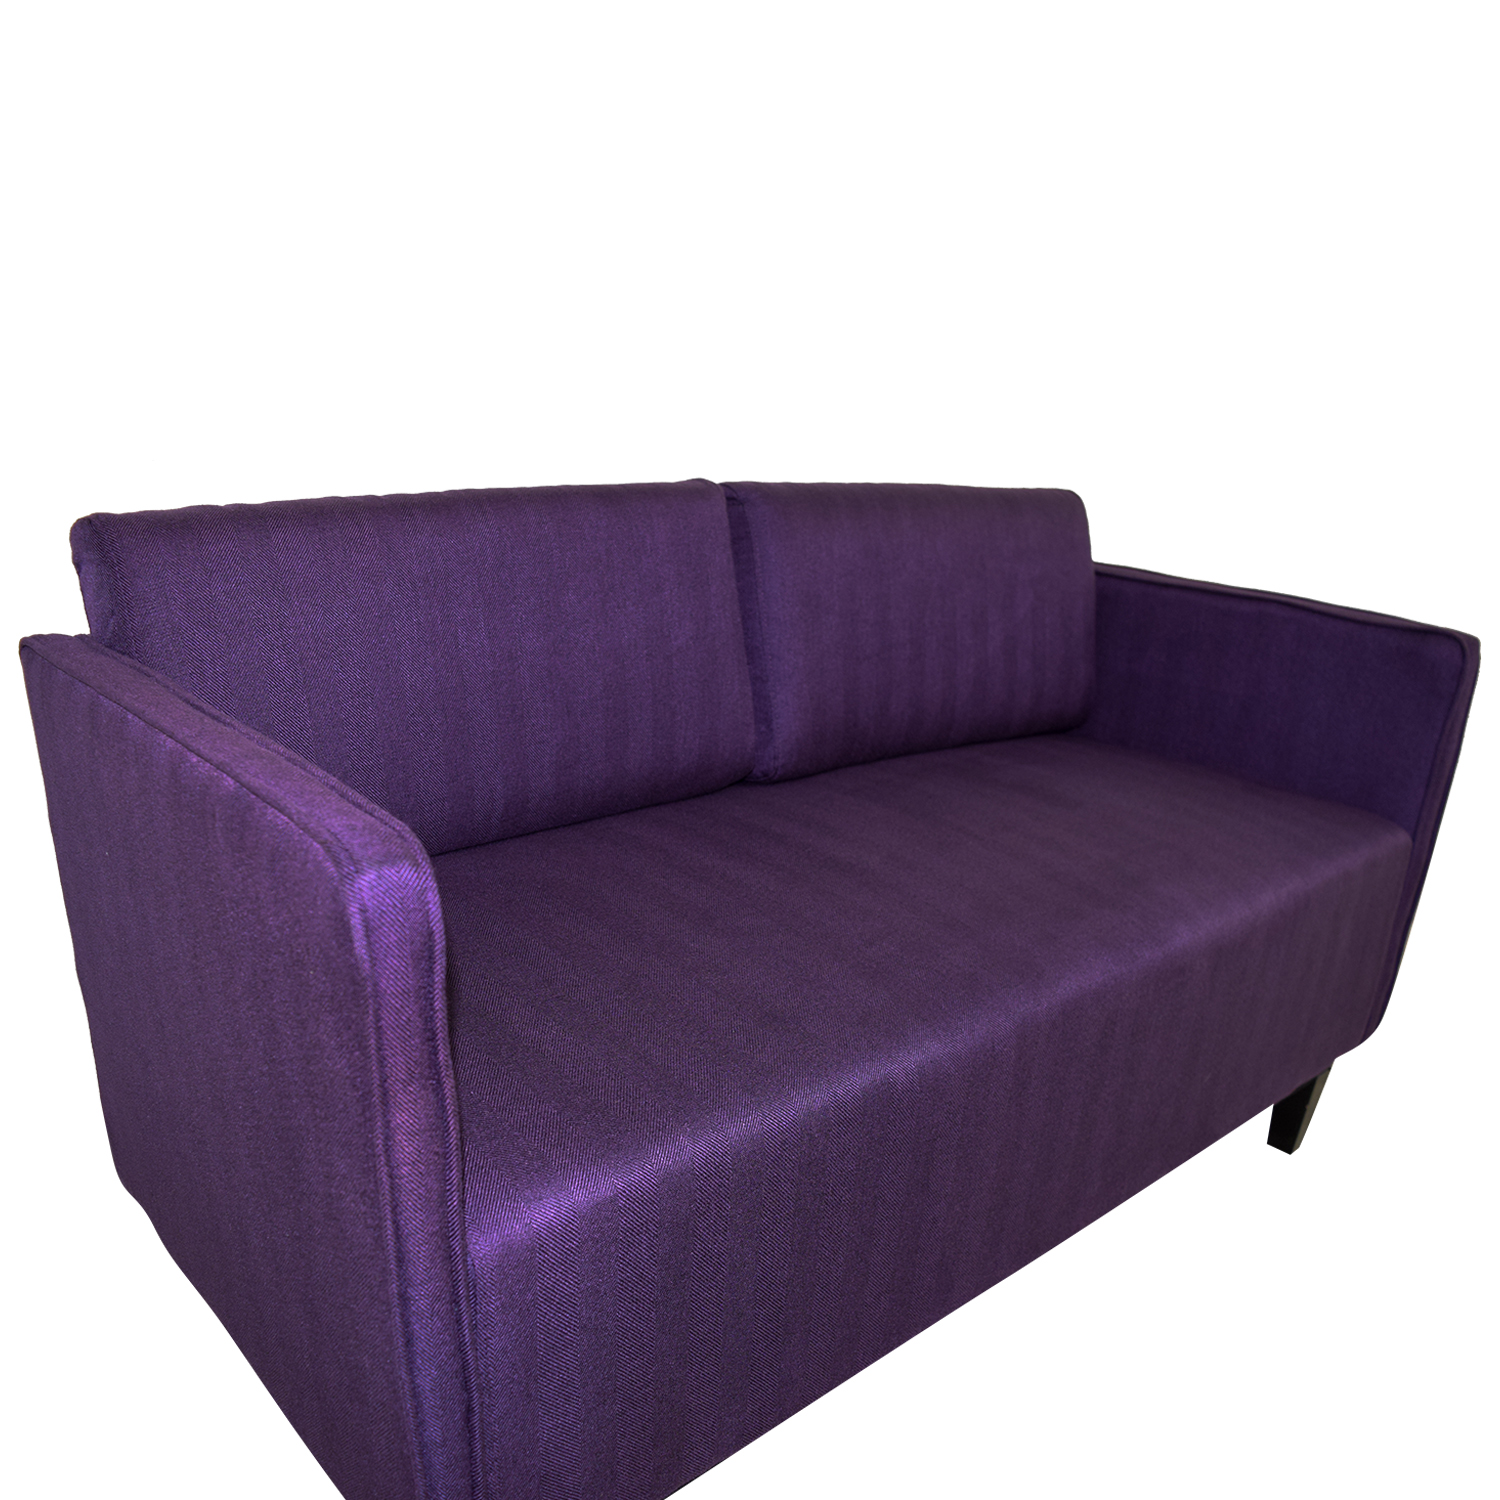 Ebern Designs Ebern Designs Dempsey Purple Herringbone Loveseat dimensions